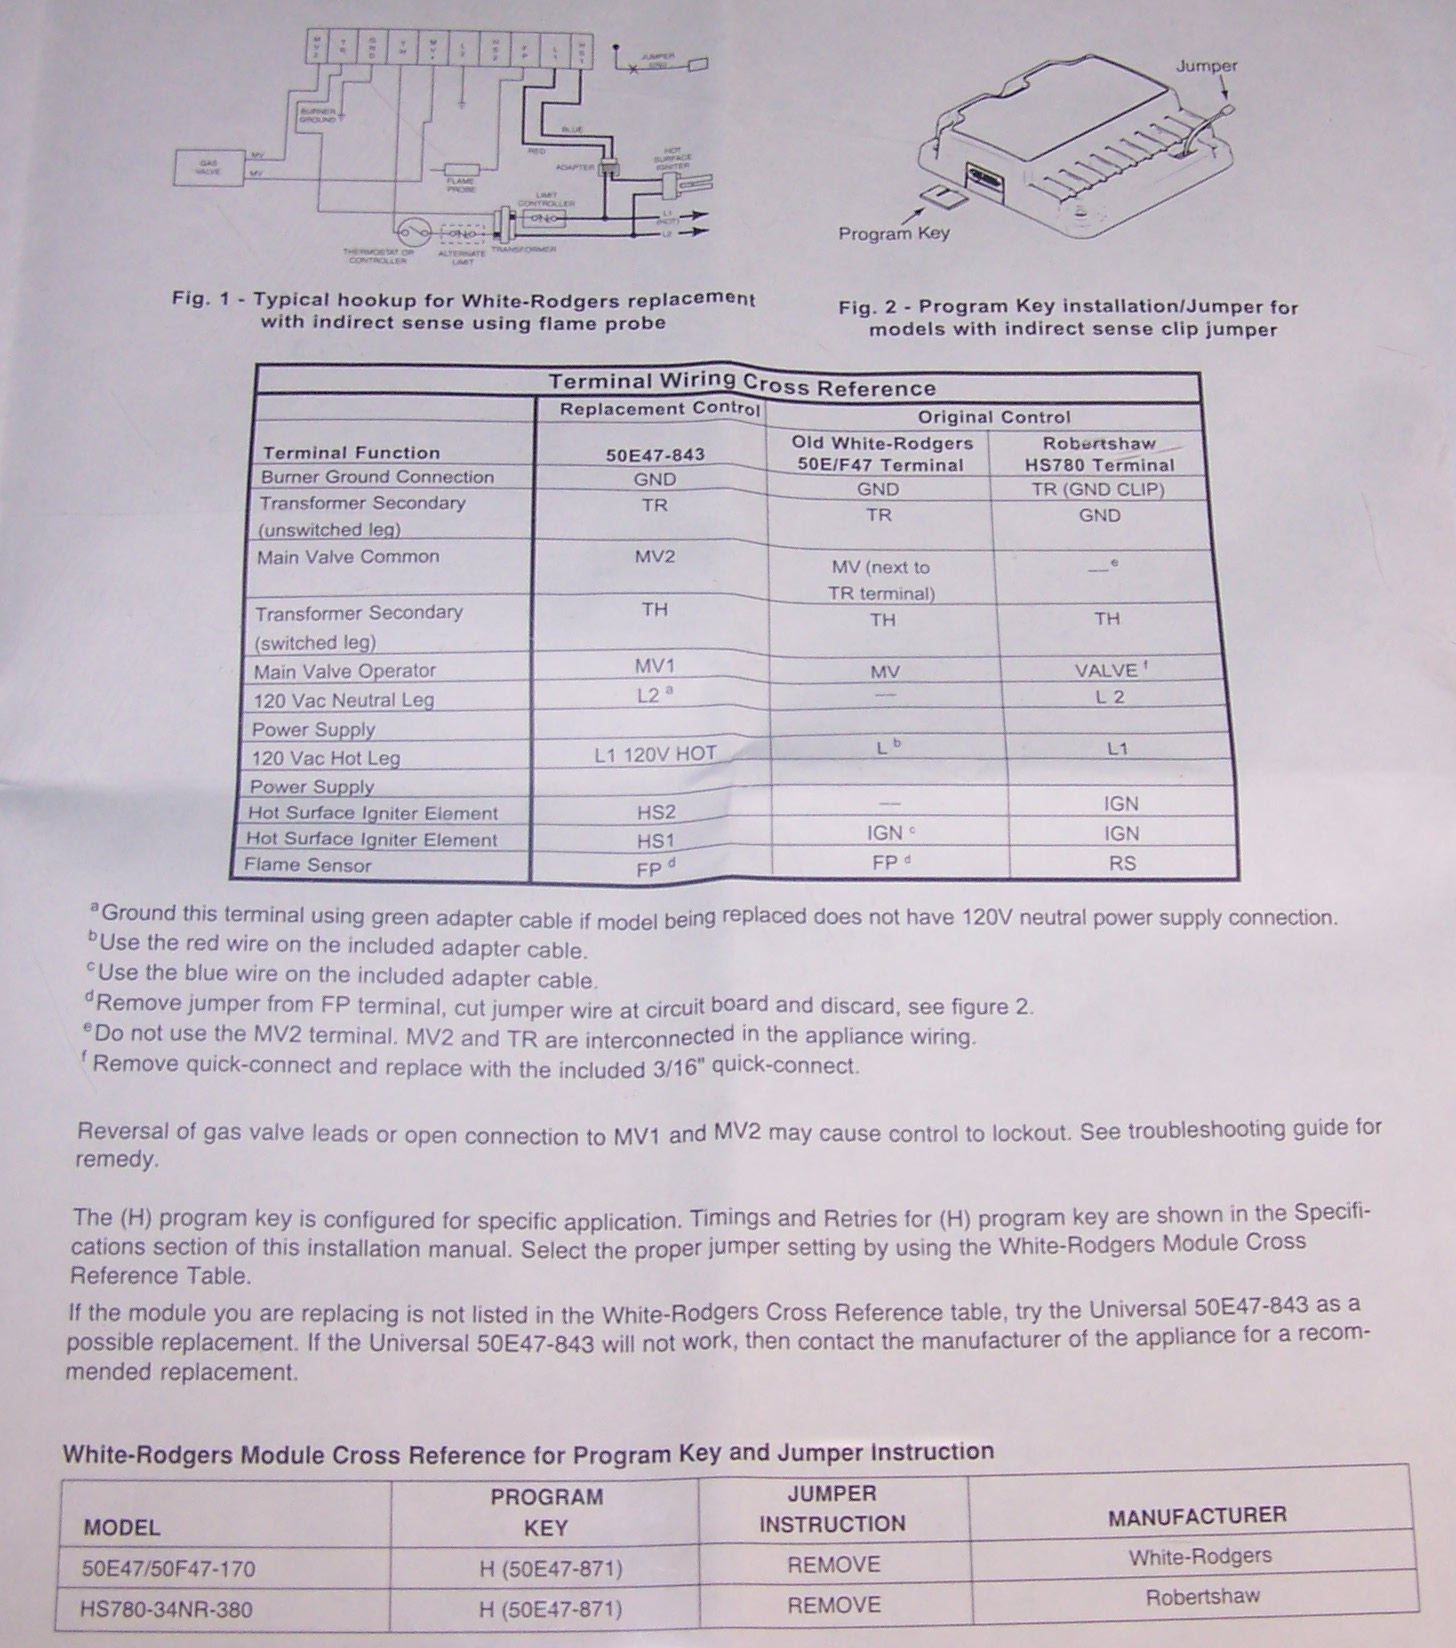 101_8842 c64111 03 amana white rodgers 50e47 871s2 hot surface ignition White Rodgers Model 843 50E47 Schematic at n-0.co